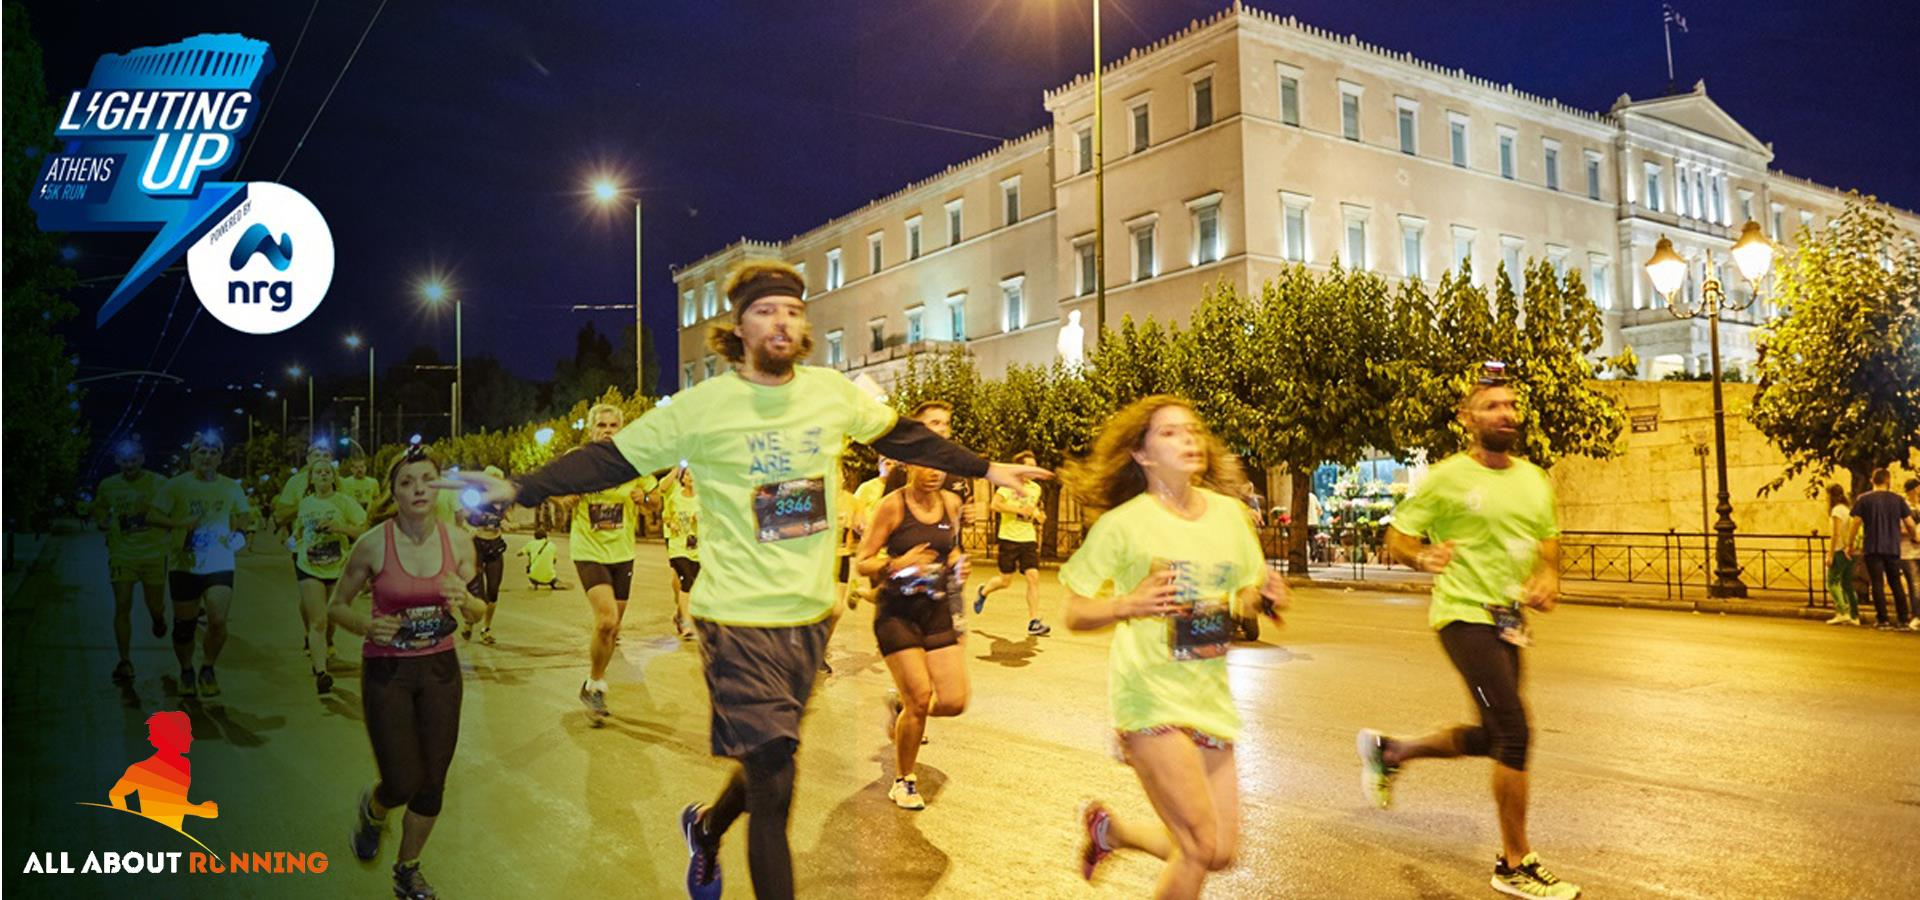 Lighting Up Athens powered by nrg